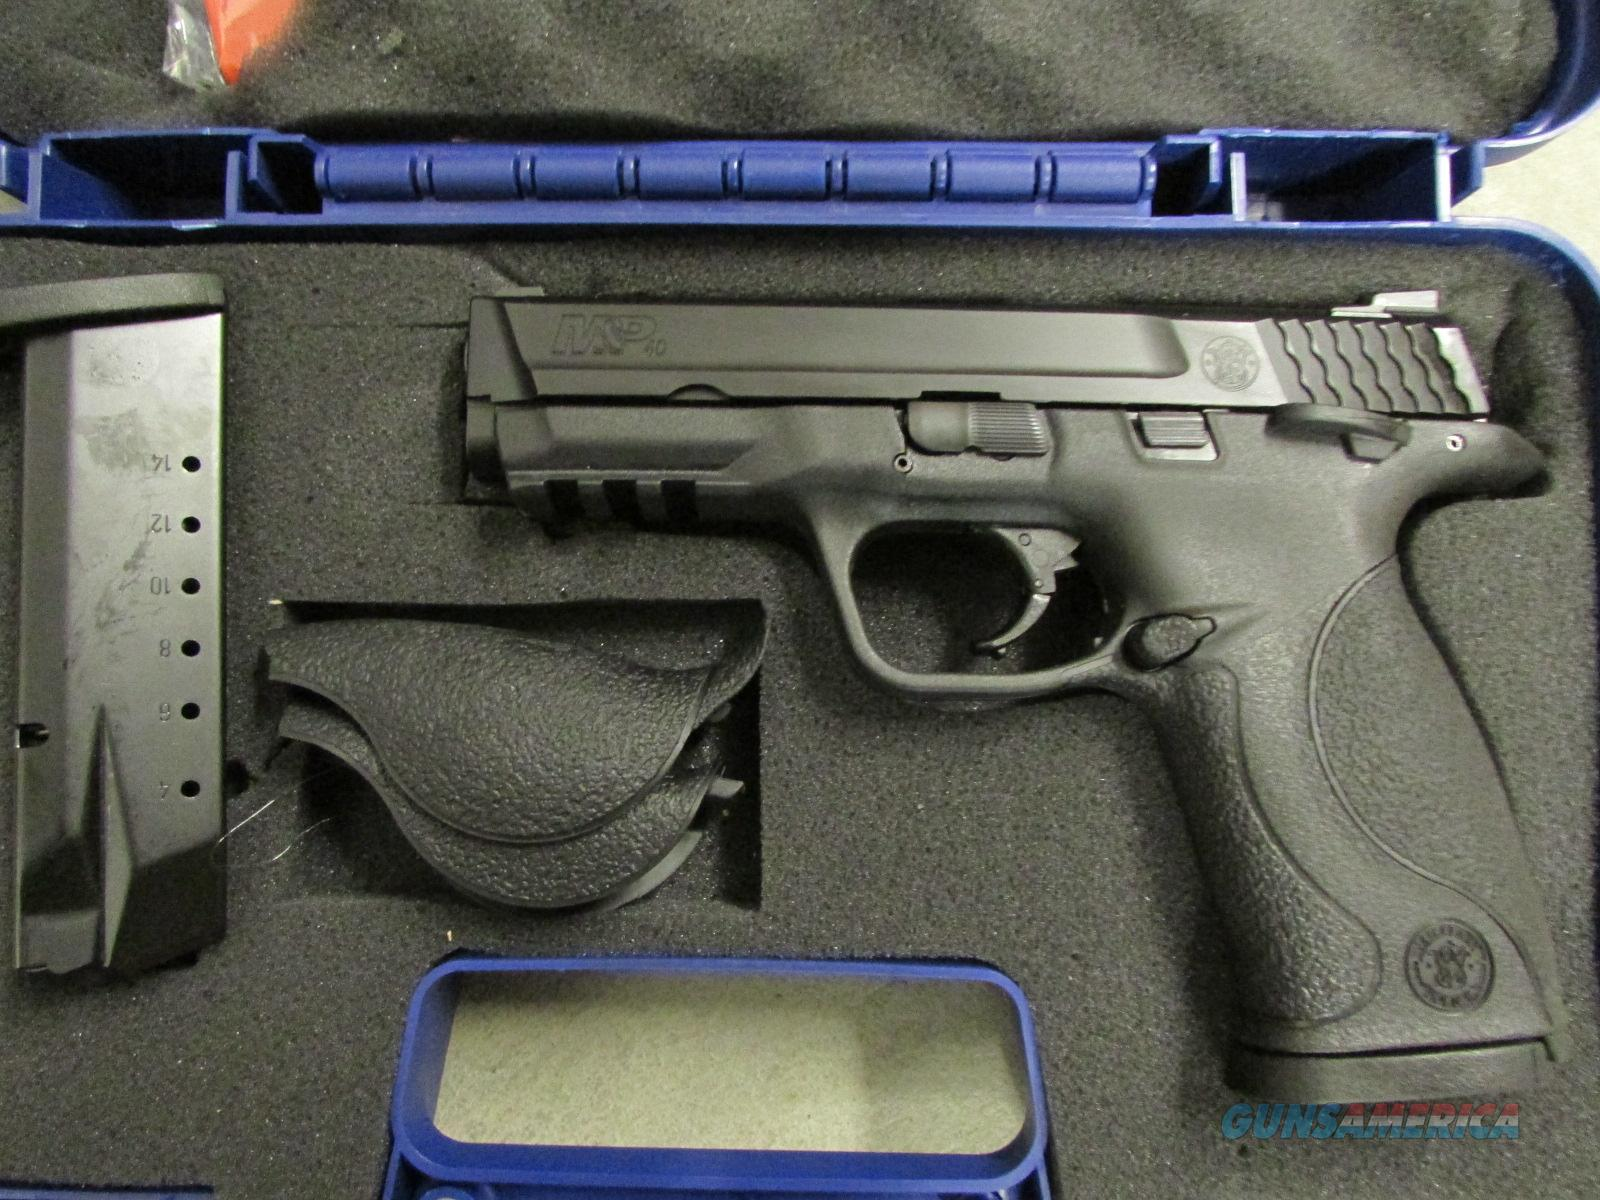 Smith & Wesson M&P40 Full Size, Thumb Safety .40 S&W  Guns > Pistols > Smith & Wesson Pistols - Autos > Polymer Frame